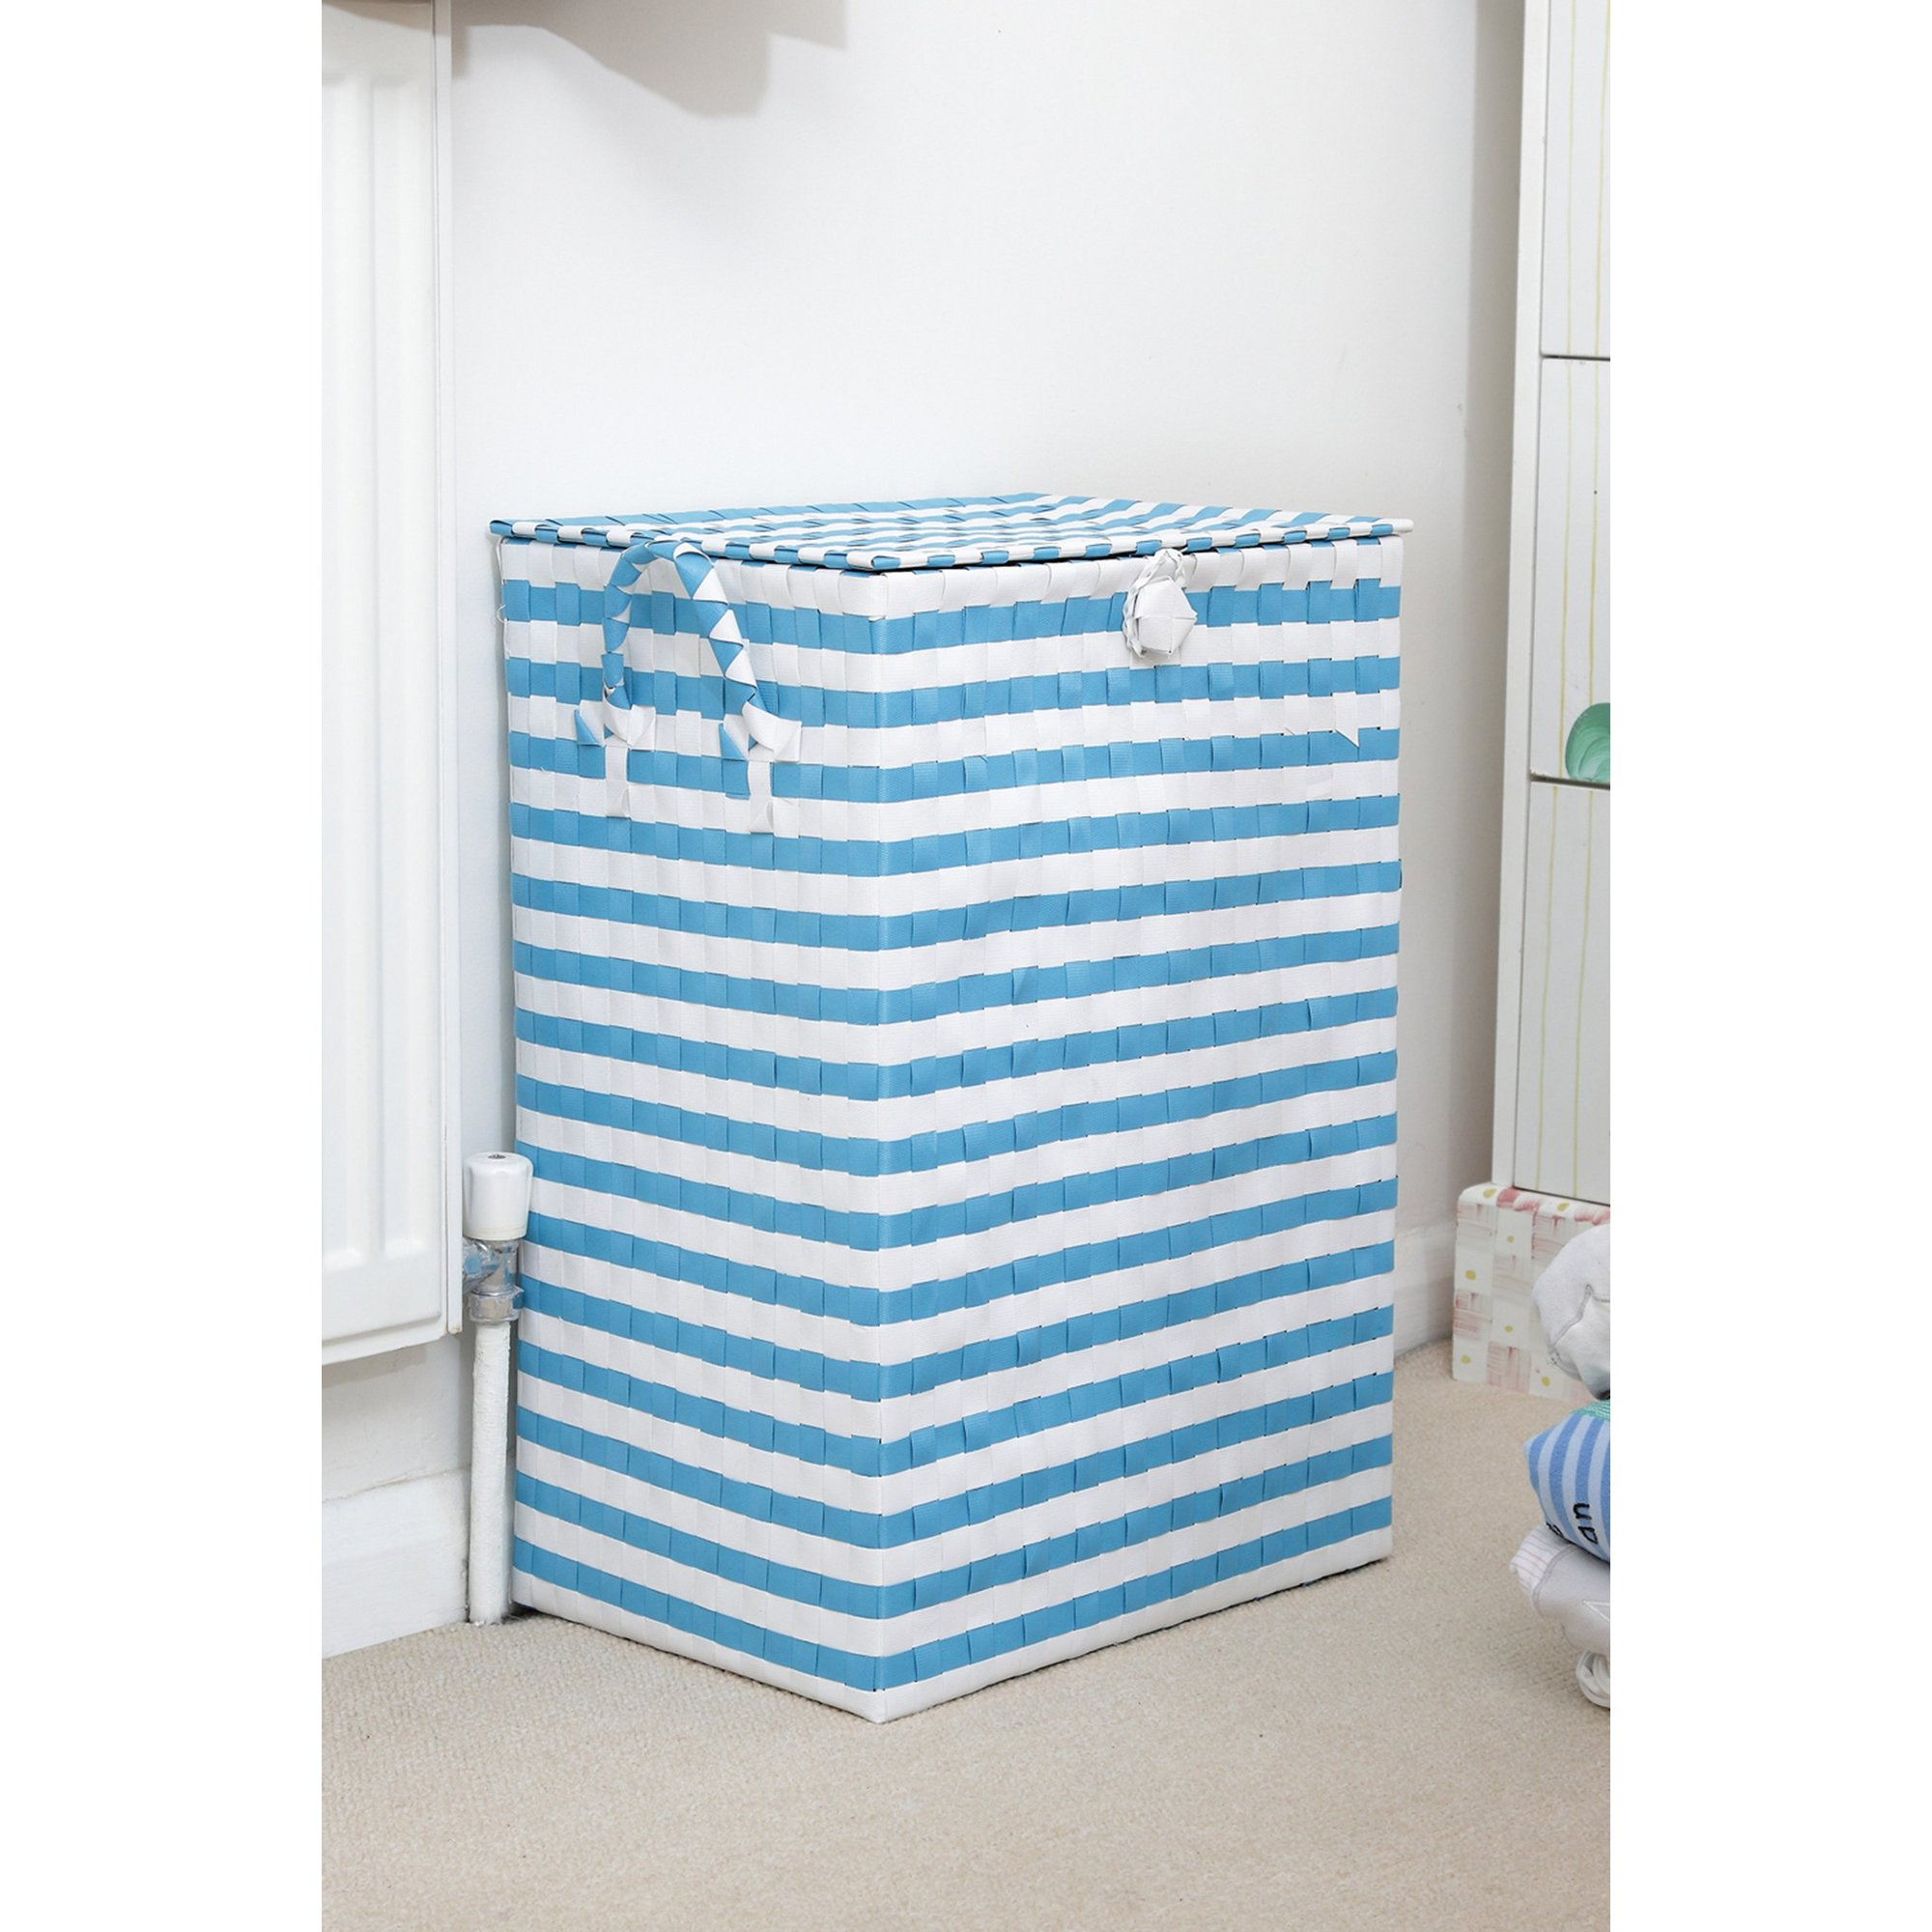 Image of Arpan Nautical Laundry Basket